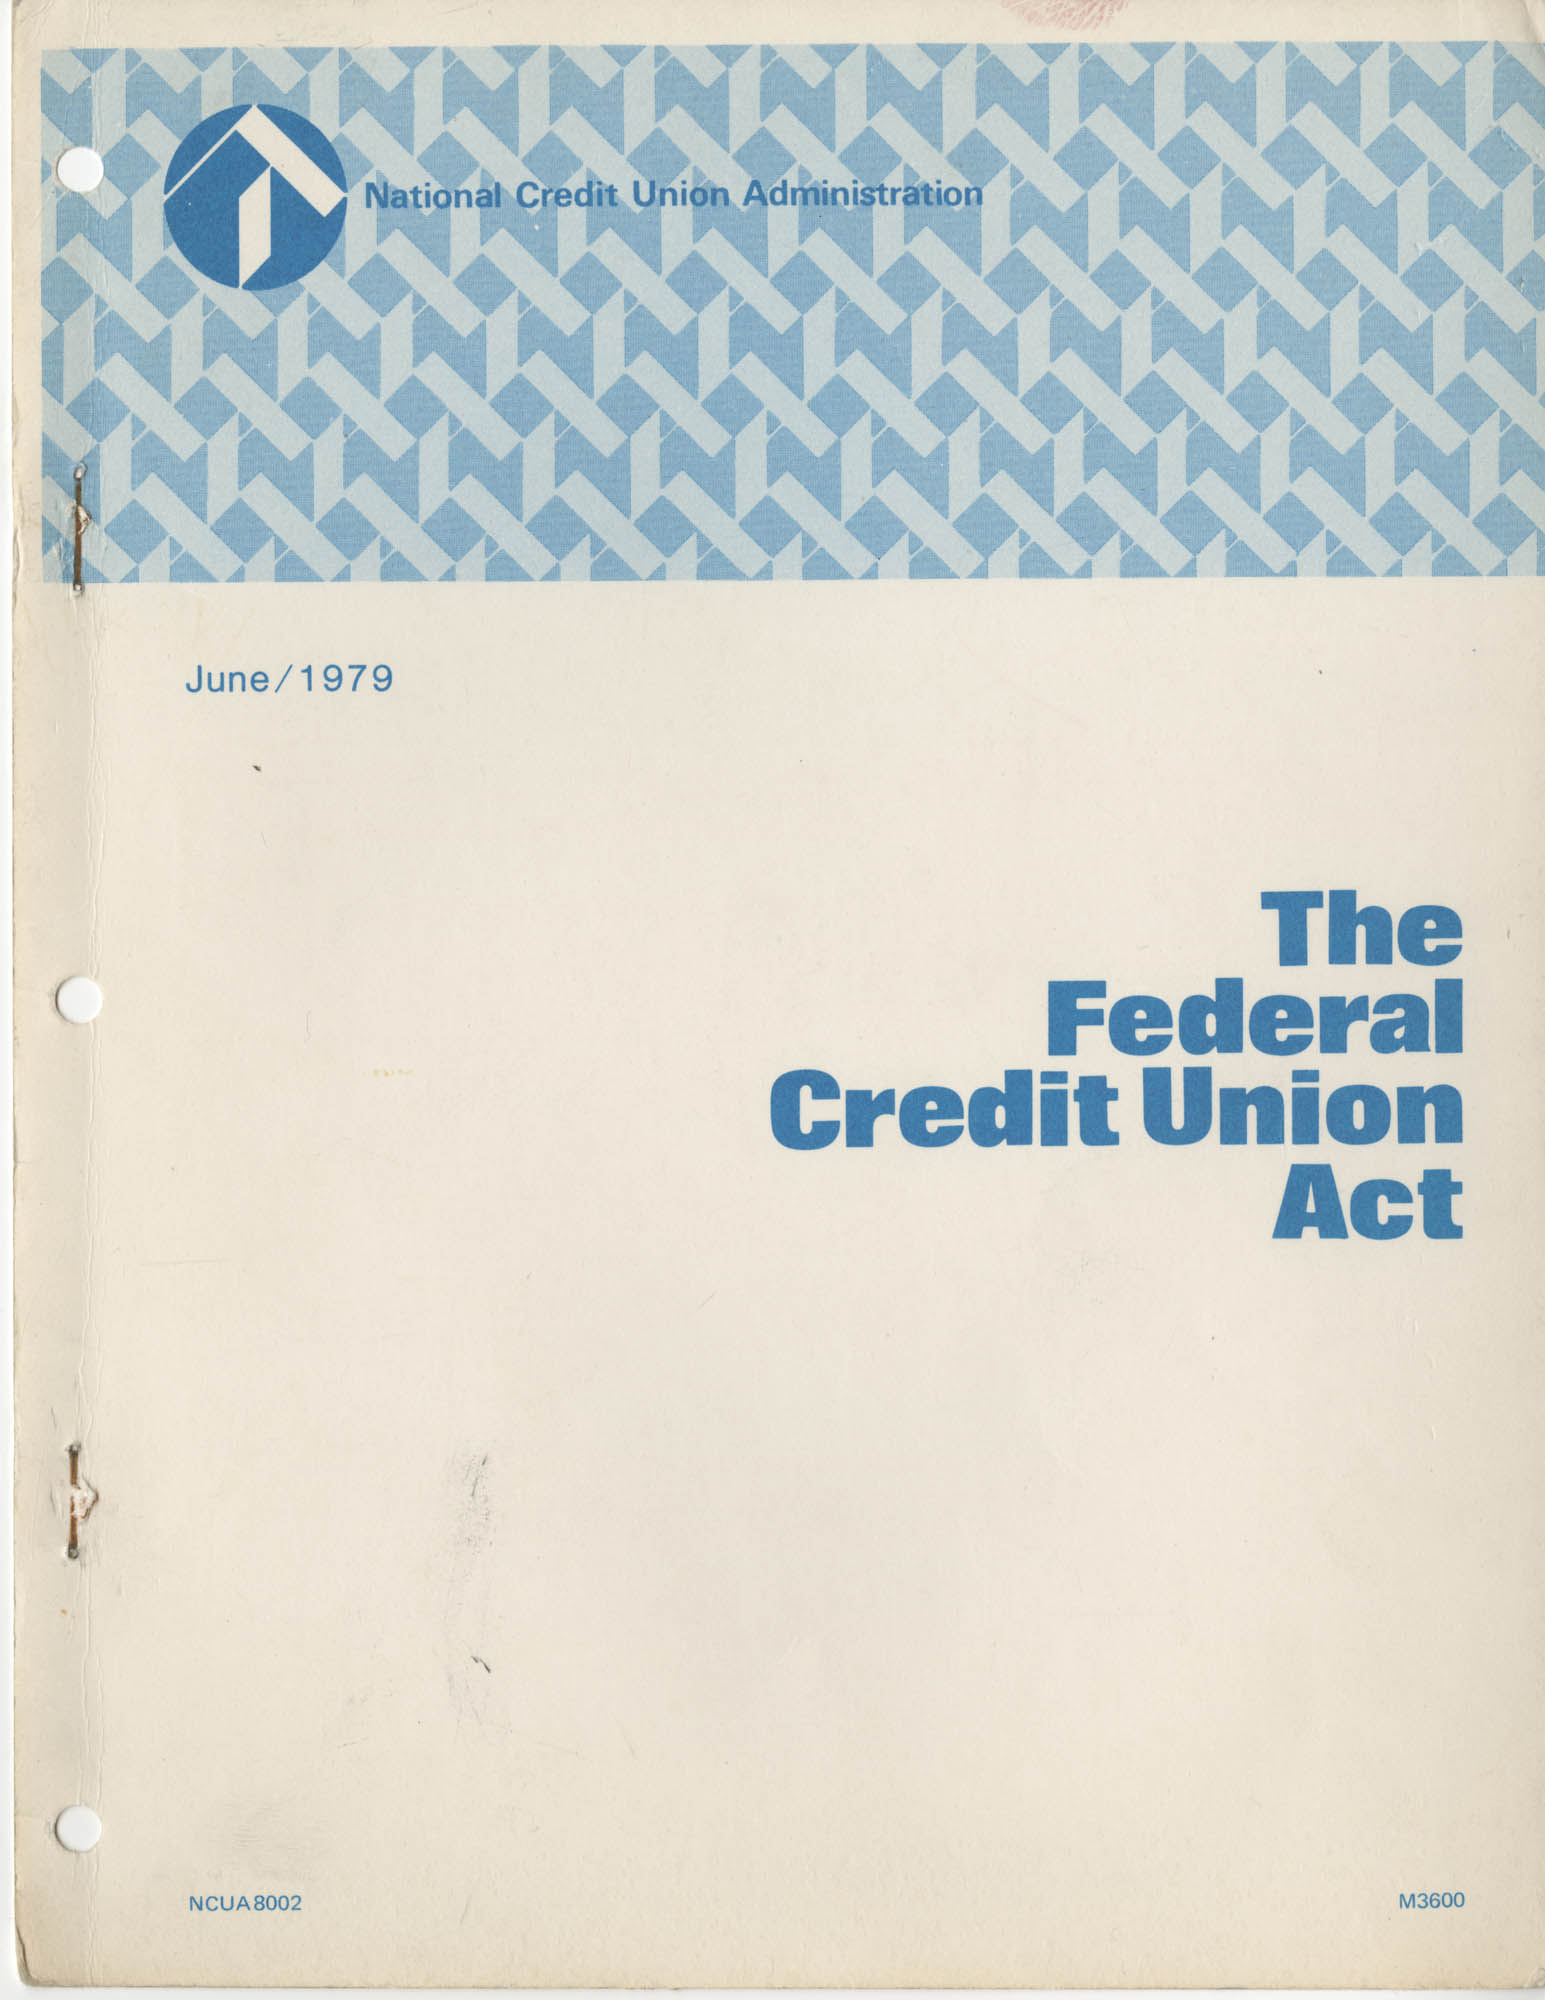 The Federal Credit Union Act, June 1979, Front Cover